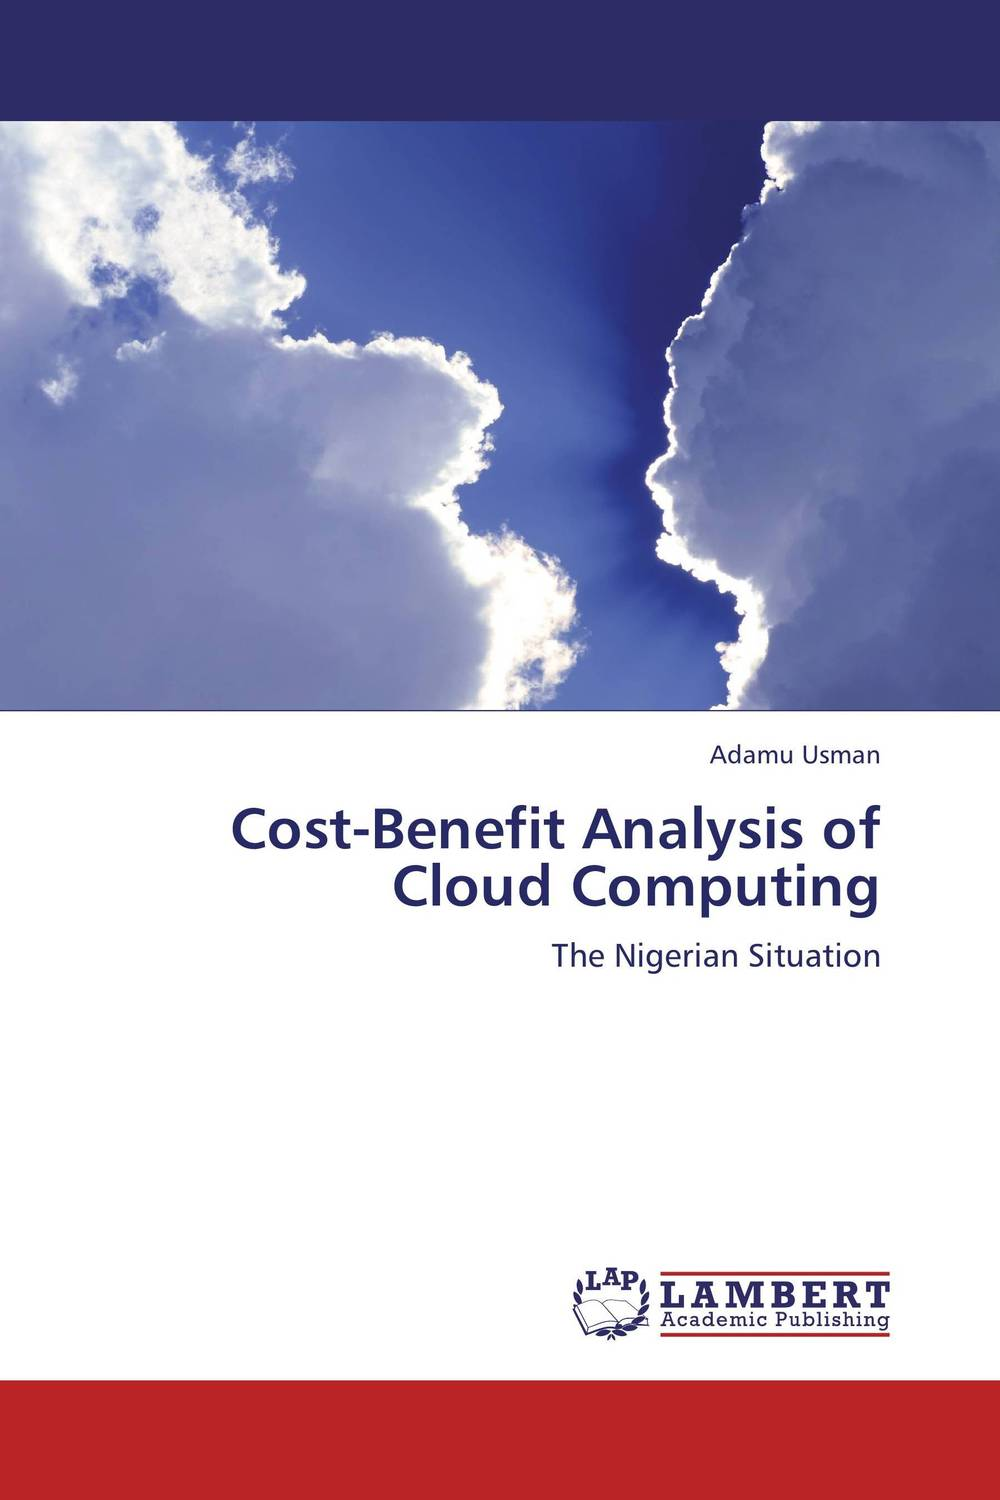 Cost-Benefit Analysis of Cloud Computing boscam 5 8ghz cloud spirit antennas txa and rxa a pair in one set multicolored